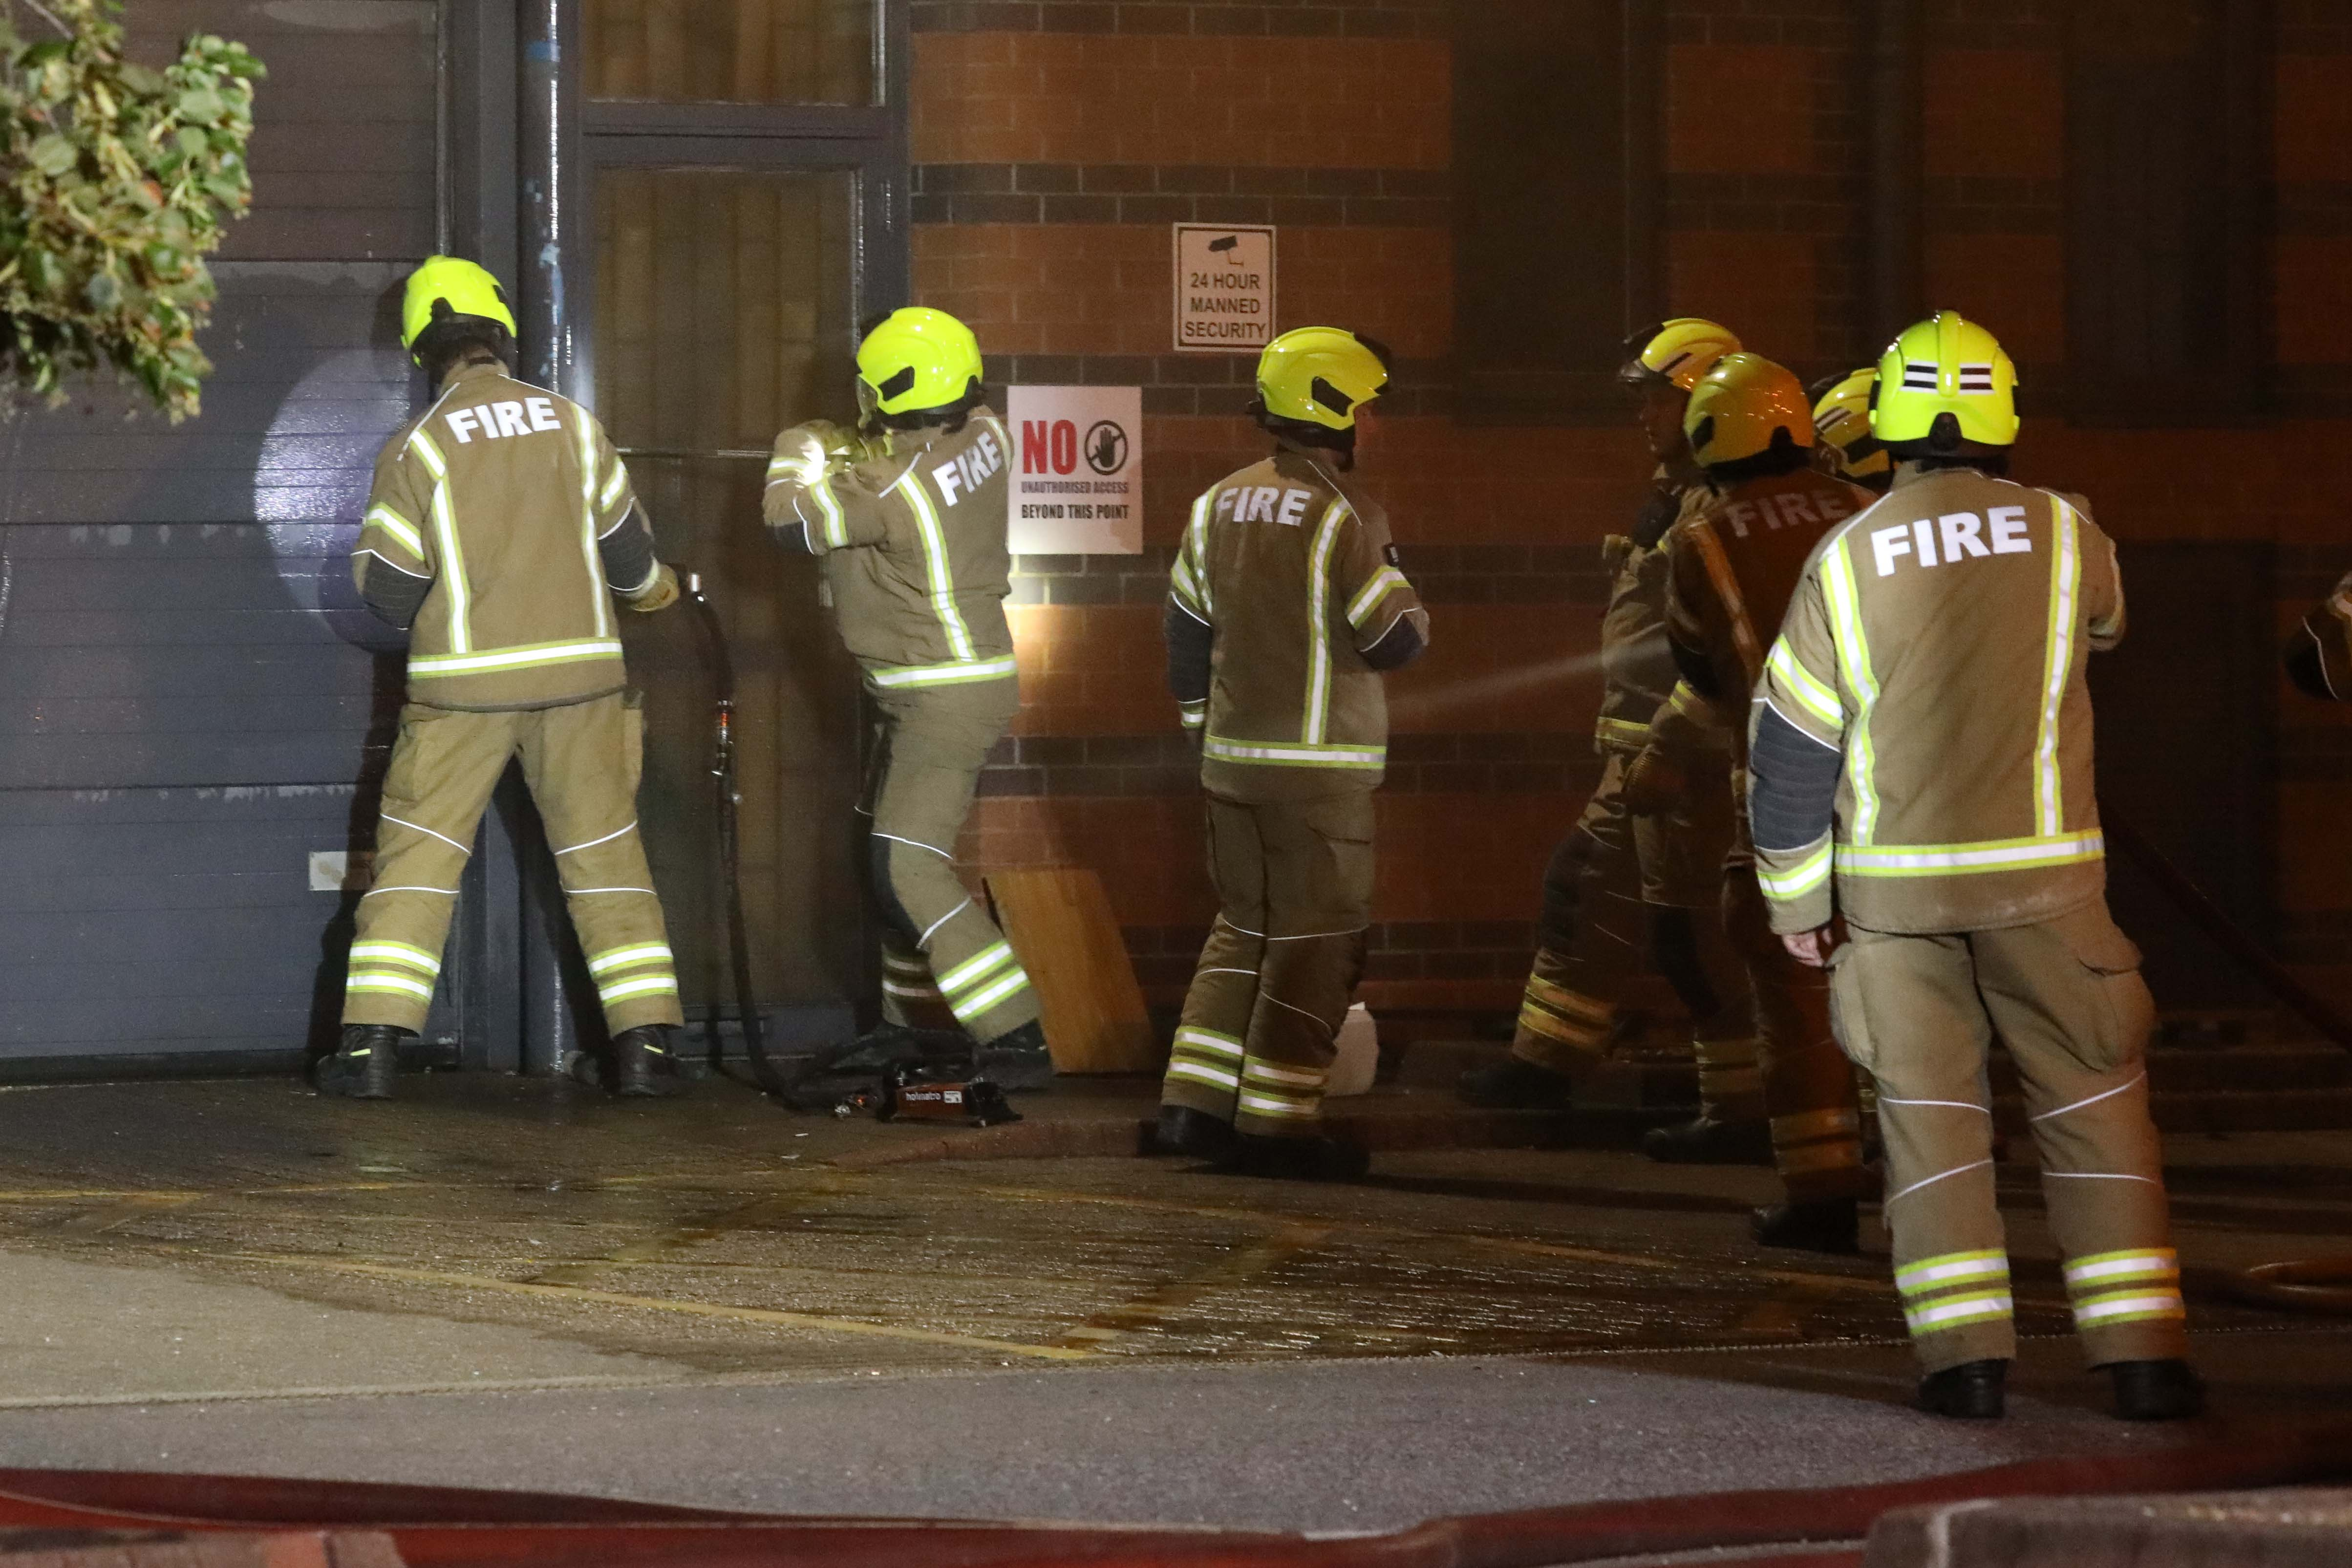 Forty firefighters called to tackle two industrial units ablaze in Barking, UKNIP